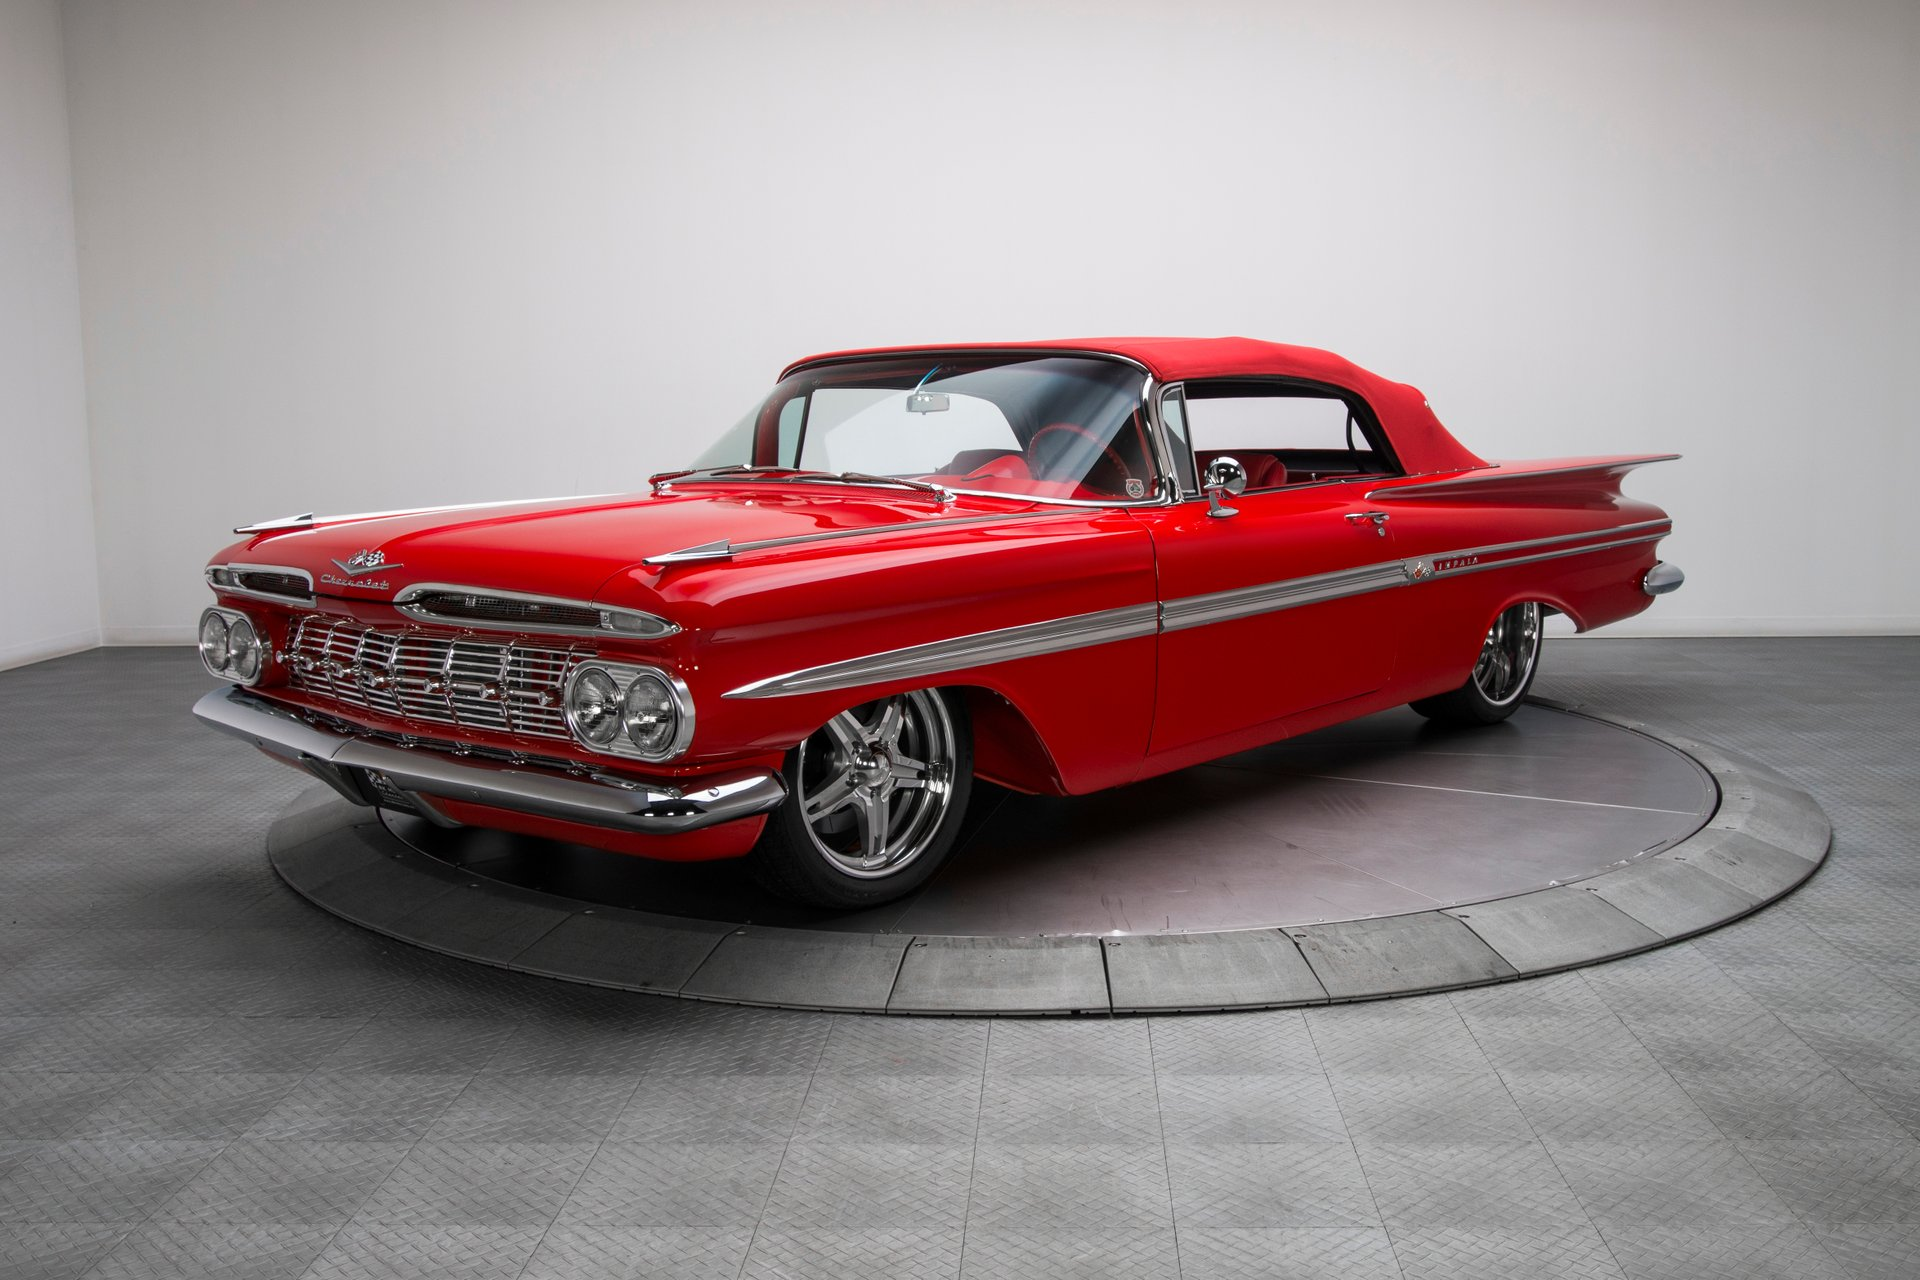 hight resolution of for sale 1959 chevrolet impala for sale 1959 chevrolet impala